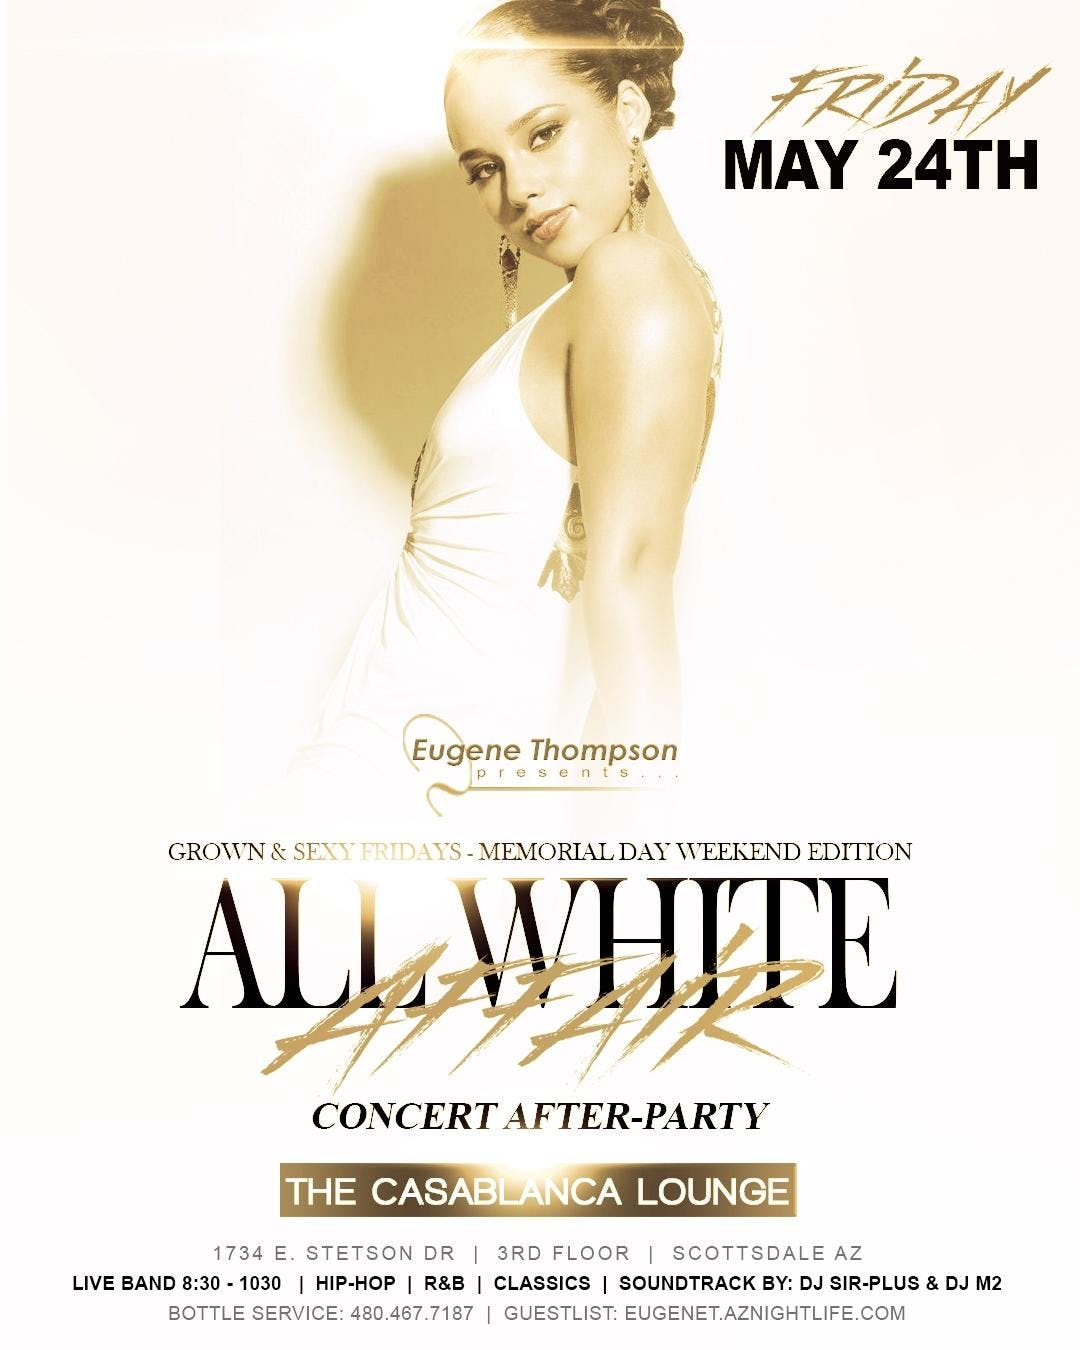 Memorial Day Weekend ALL WHITE AFFAIR & Concert After-Party